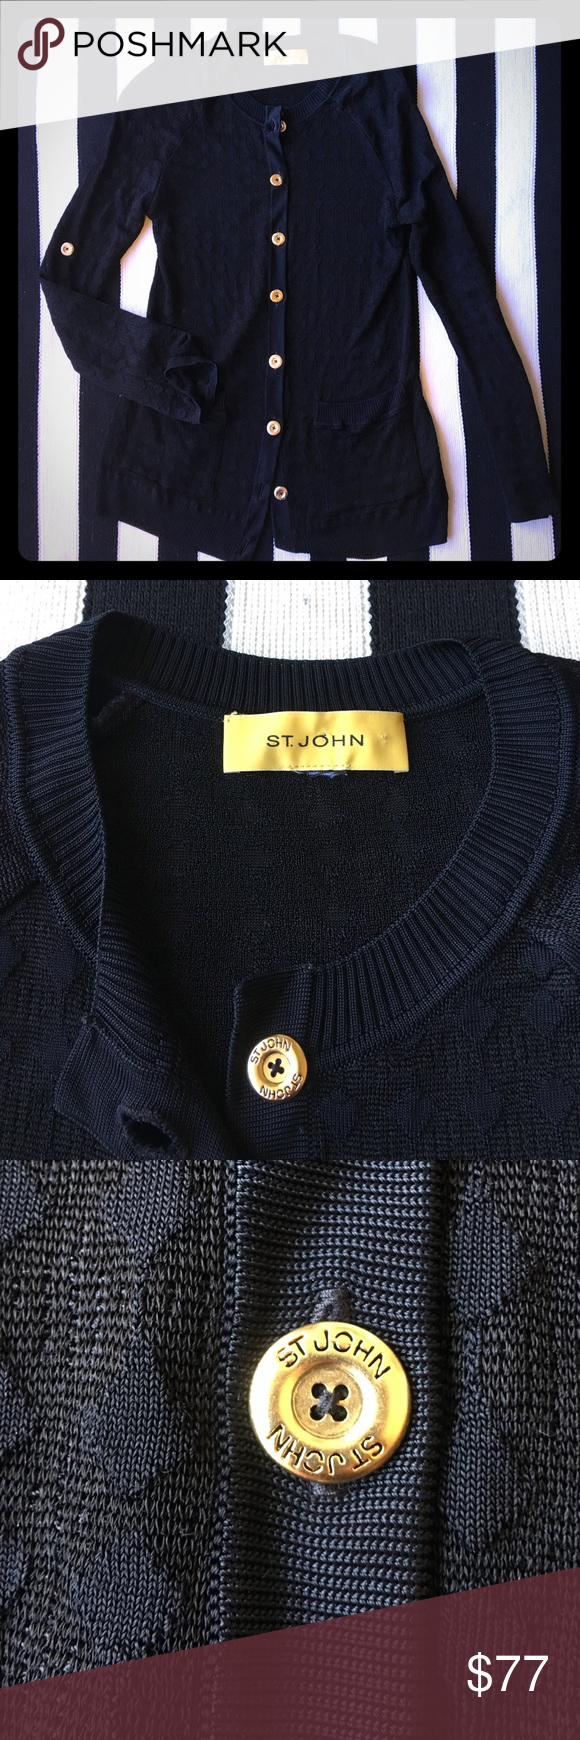 St John Textured black & gold button up cardigan | Black gold ...